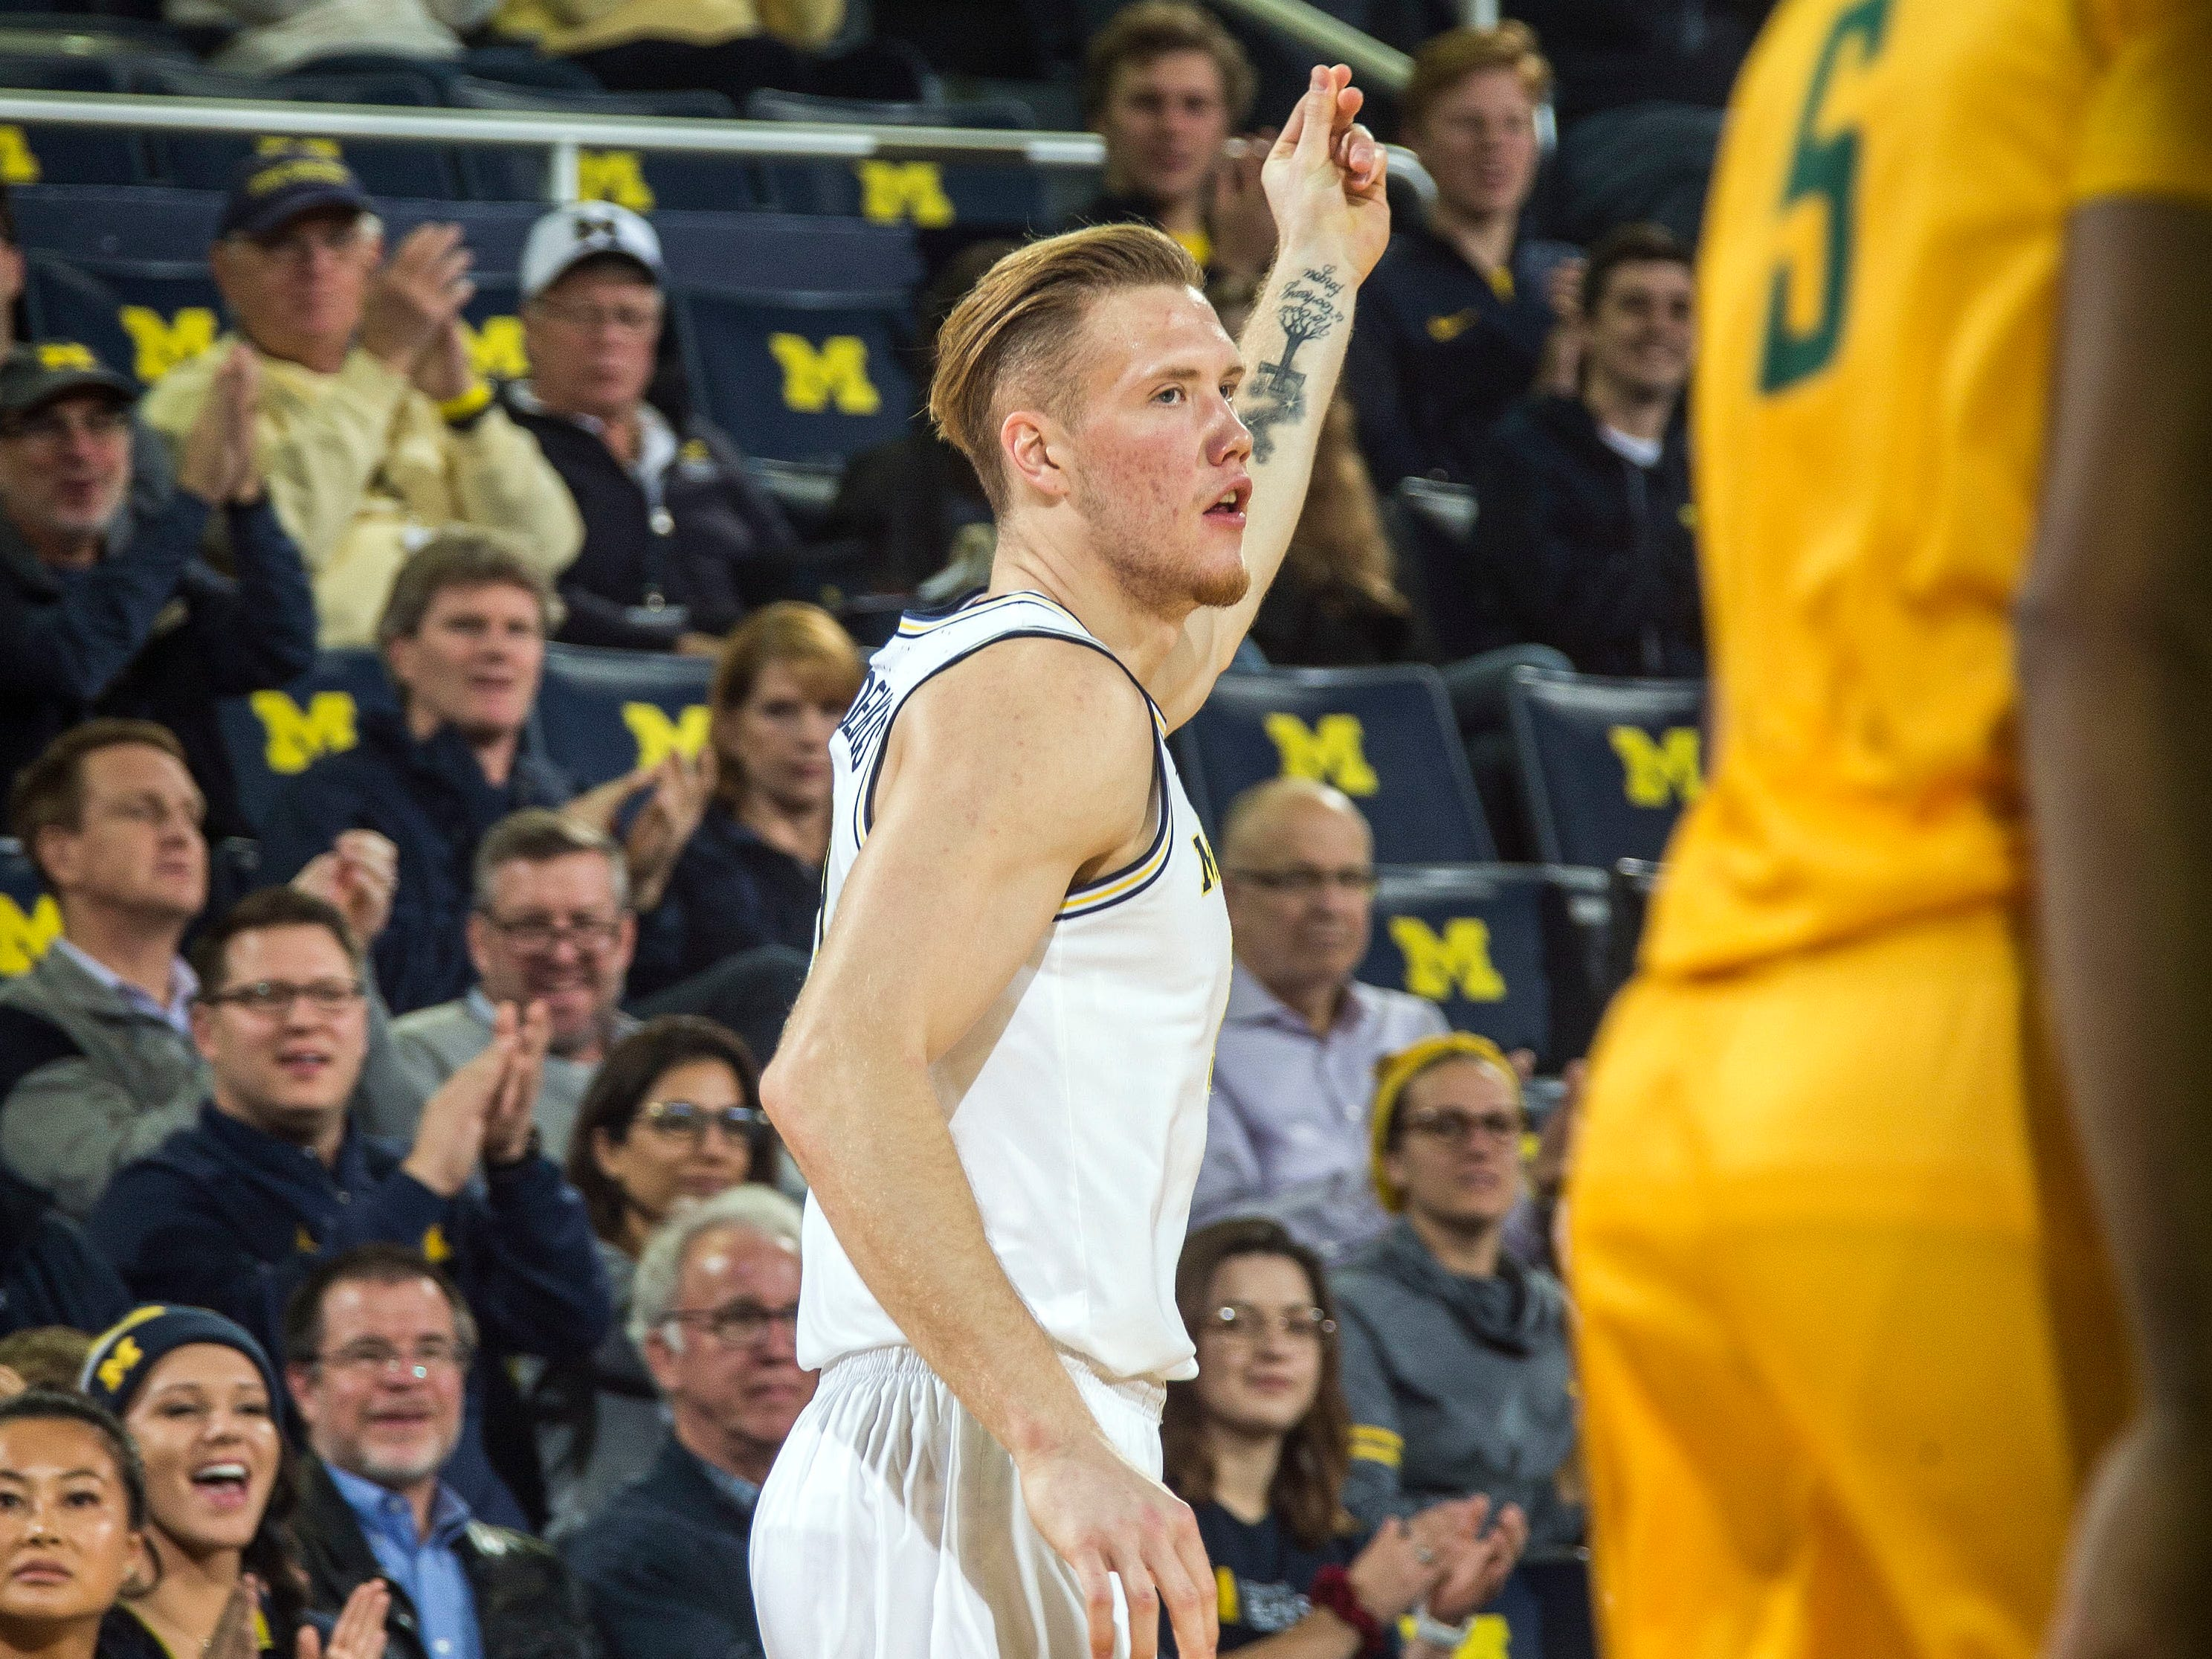 Michigan forward Ignas Brazdeikis celebrates making a three point basket in the first half of an NCAA college basketball game against Norfolk State